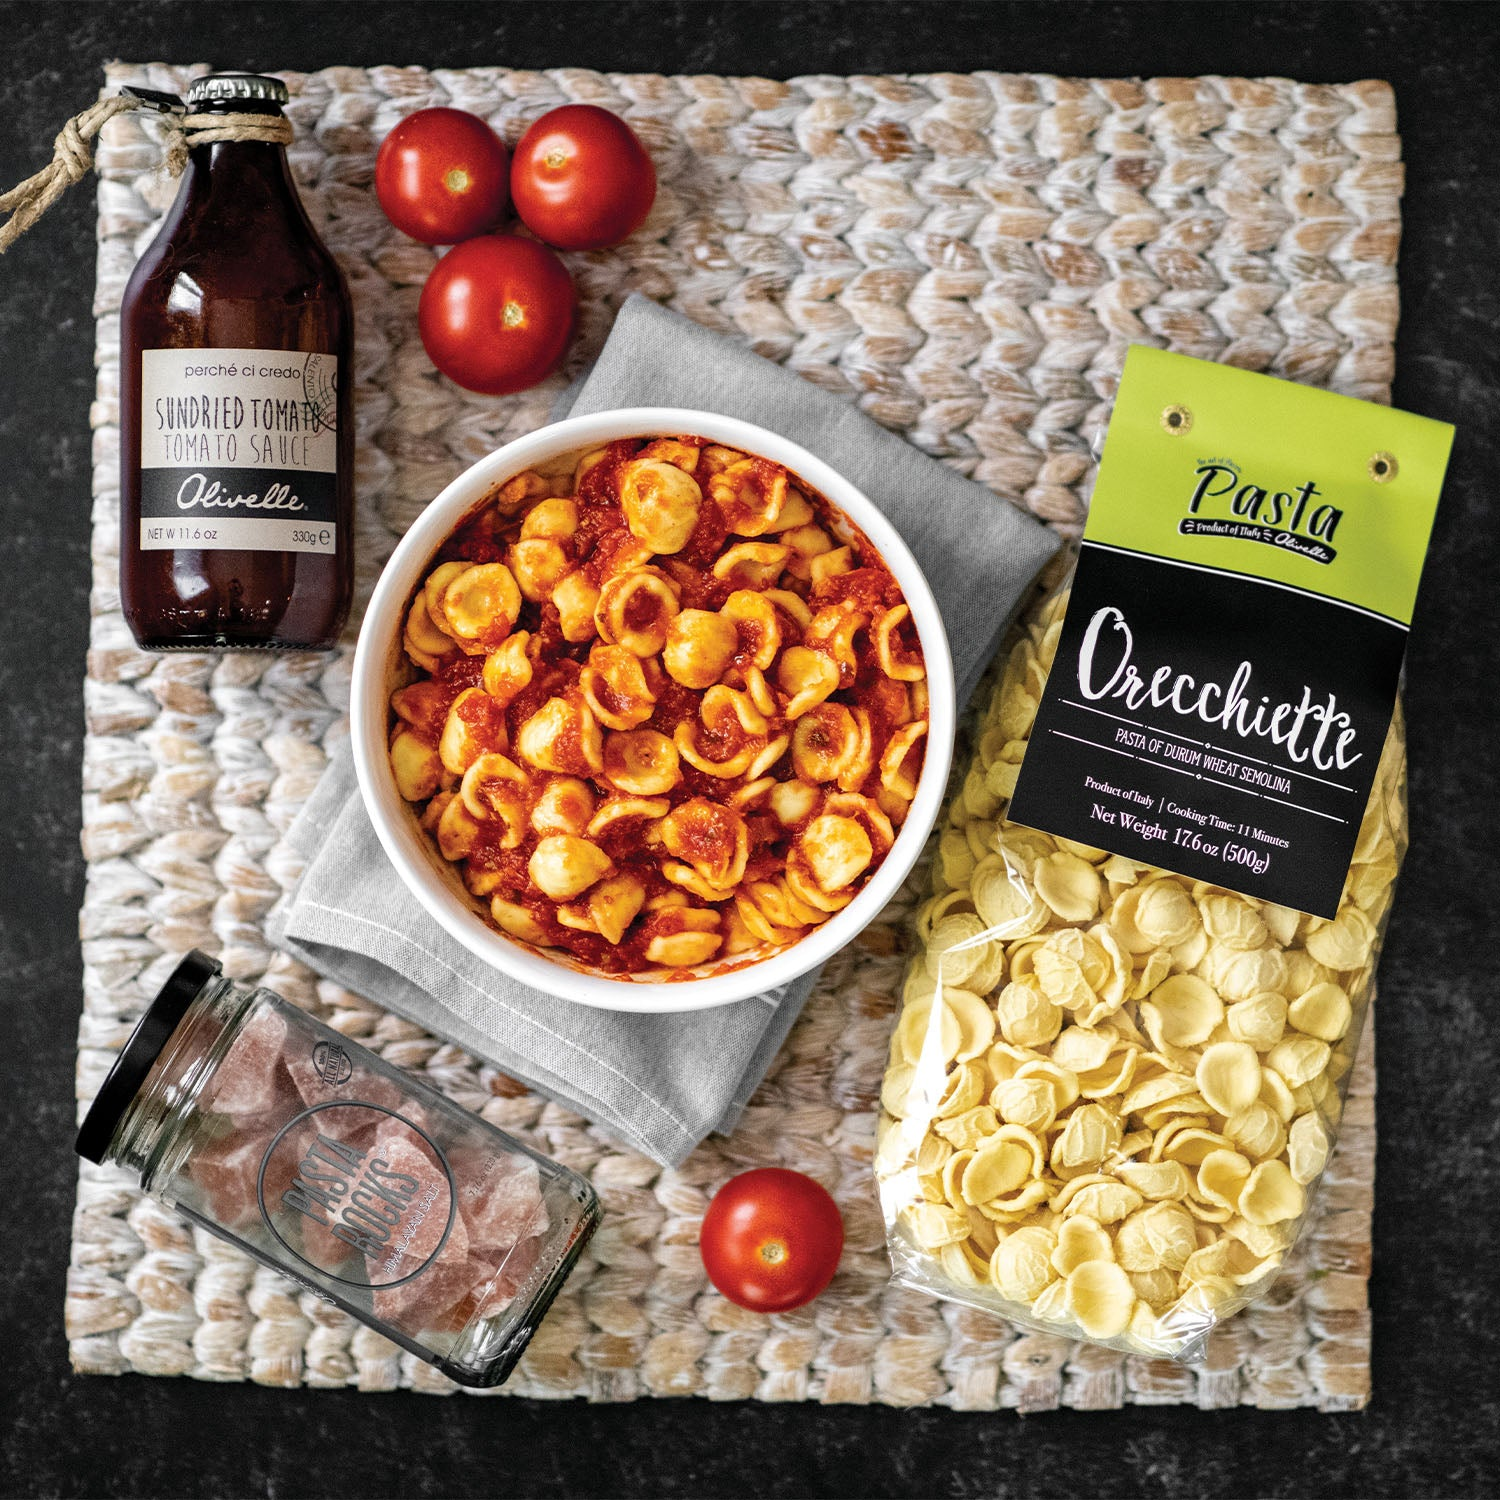 Black gift box, oreccheitte pasta, ricotta tomato sauce, and pasta rocks as an example of what to chose in your gift kit.